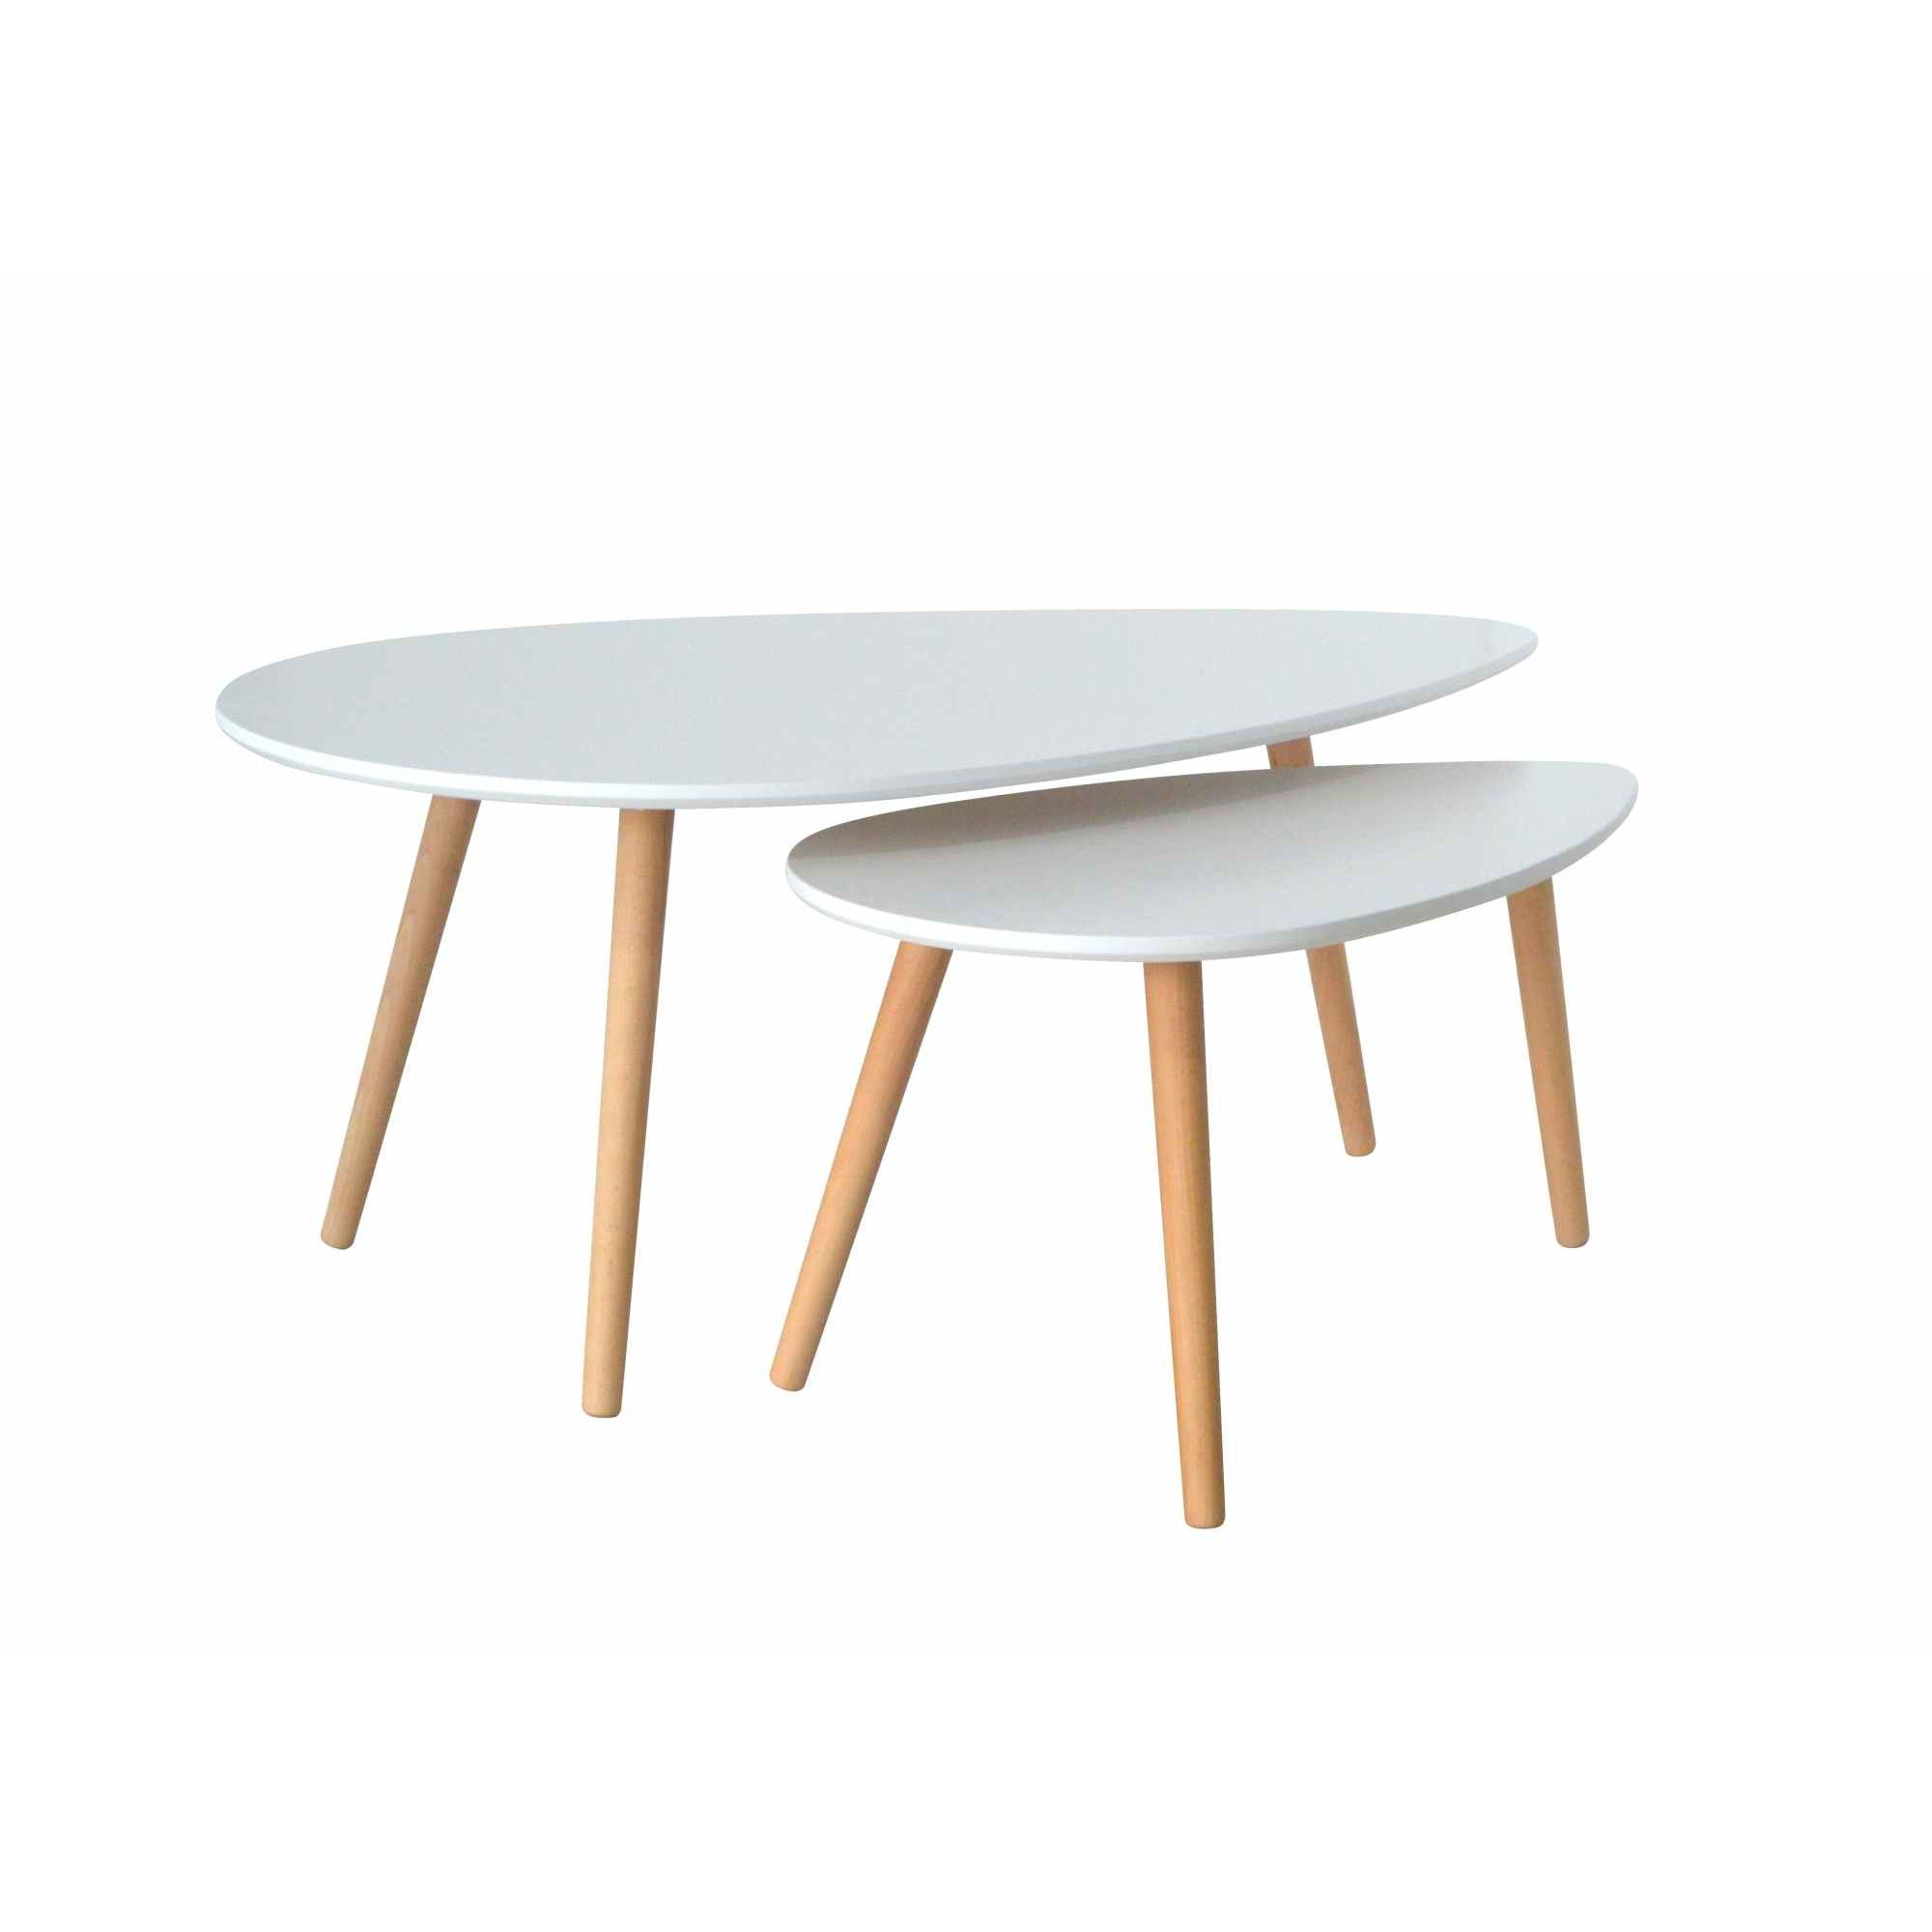 Deco in paris table basse scandinave blanc avesta avesta for Meuble scandinave table basse